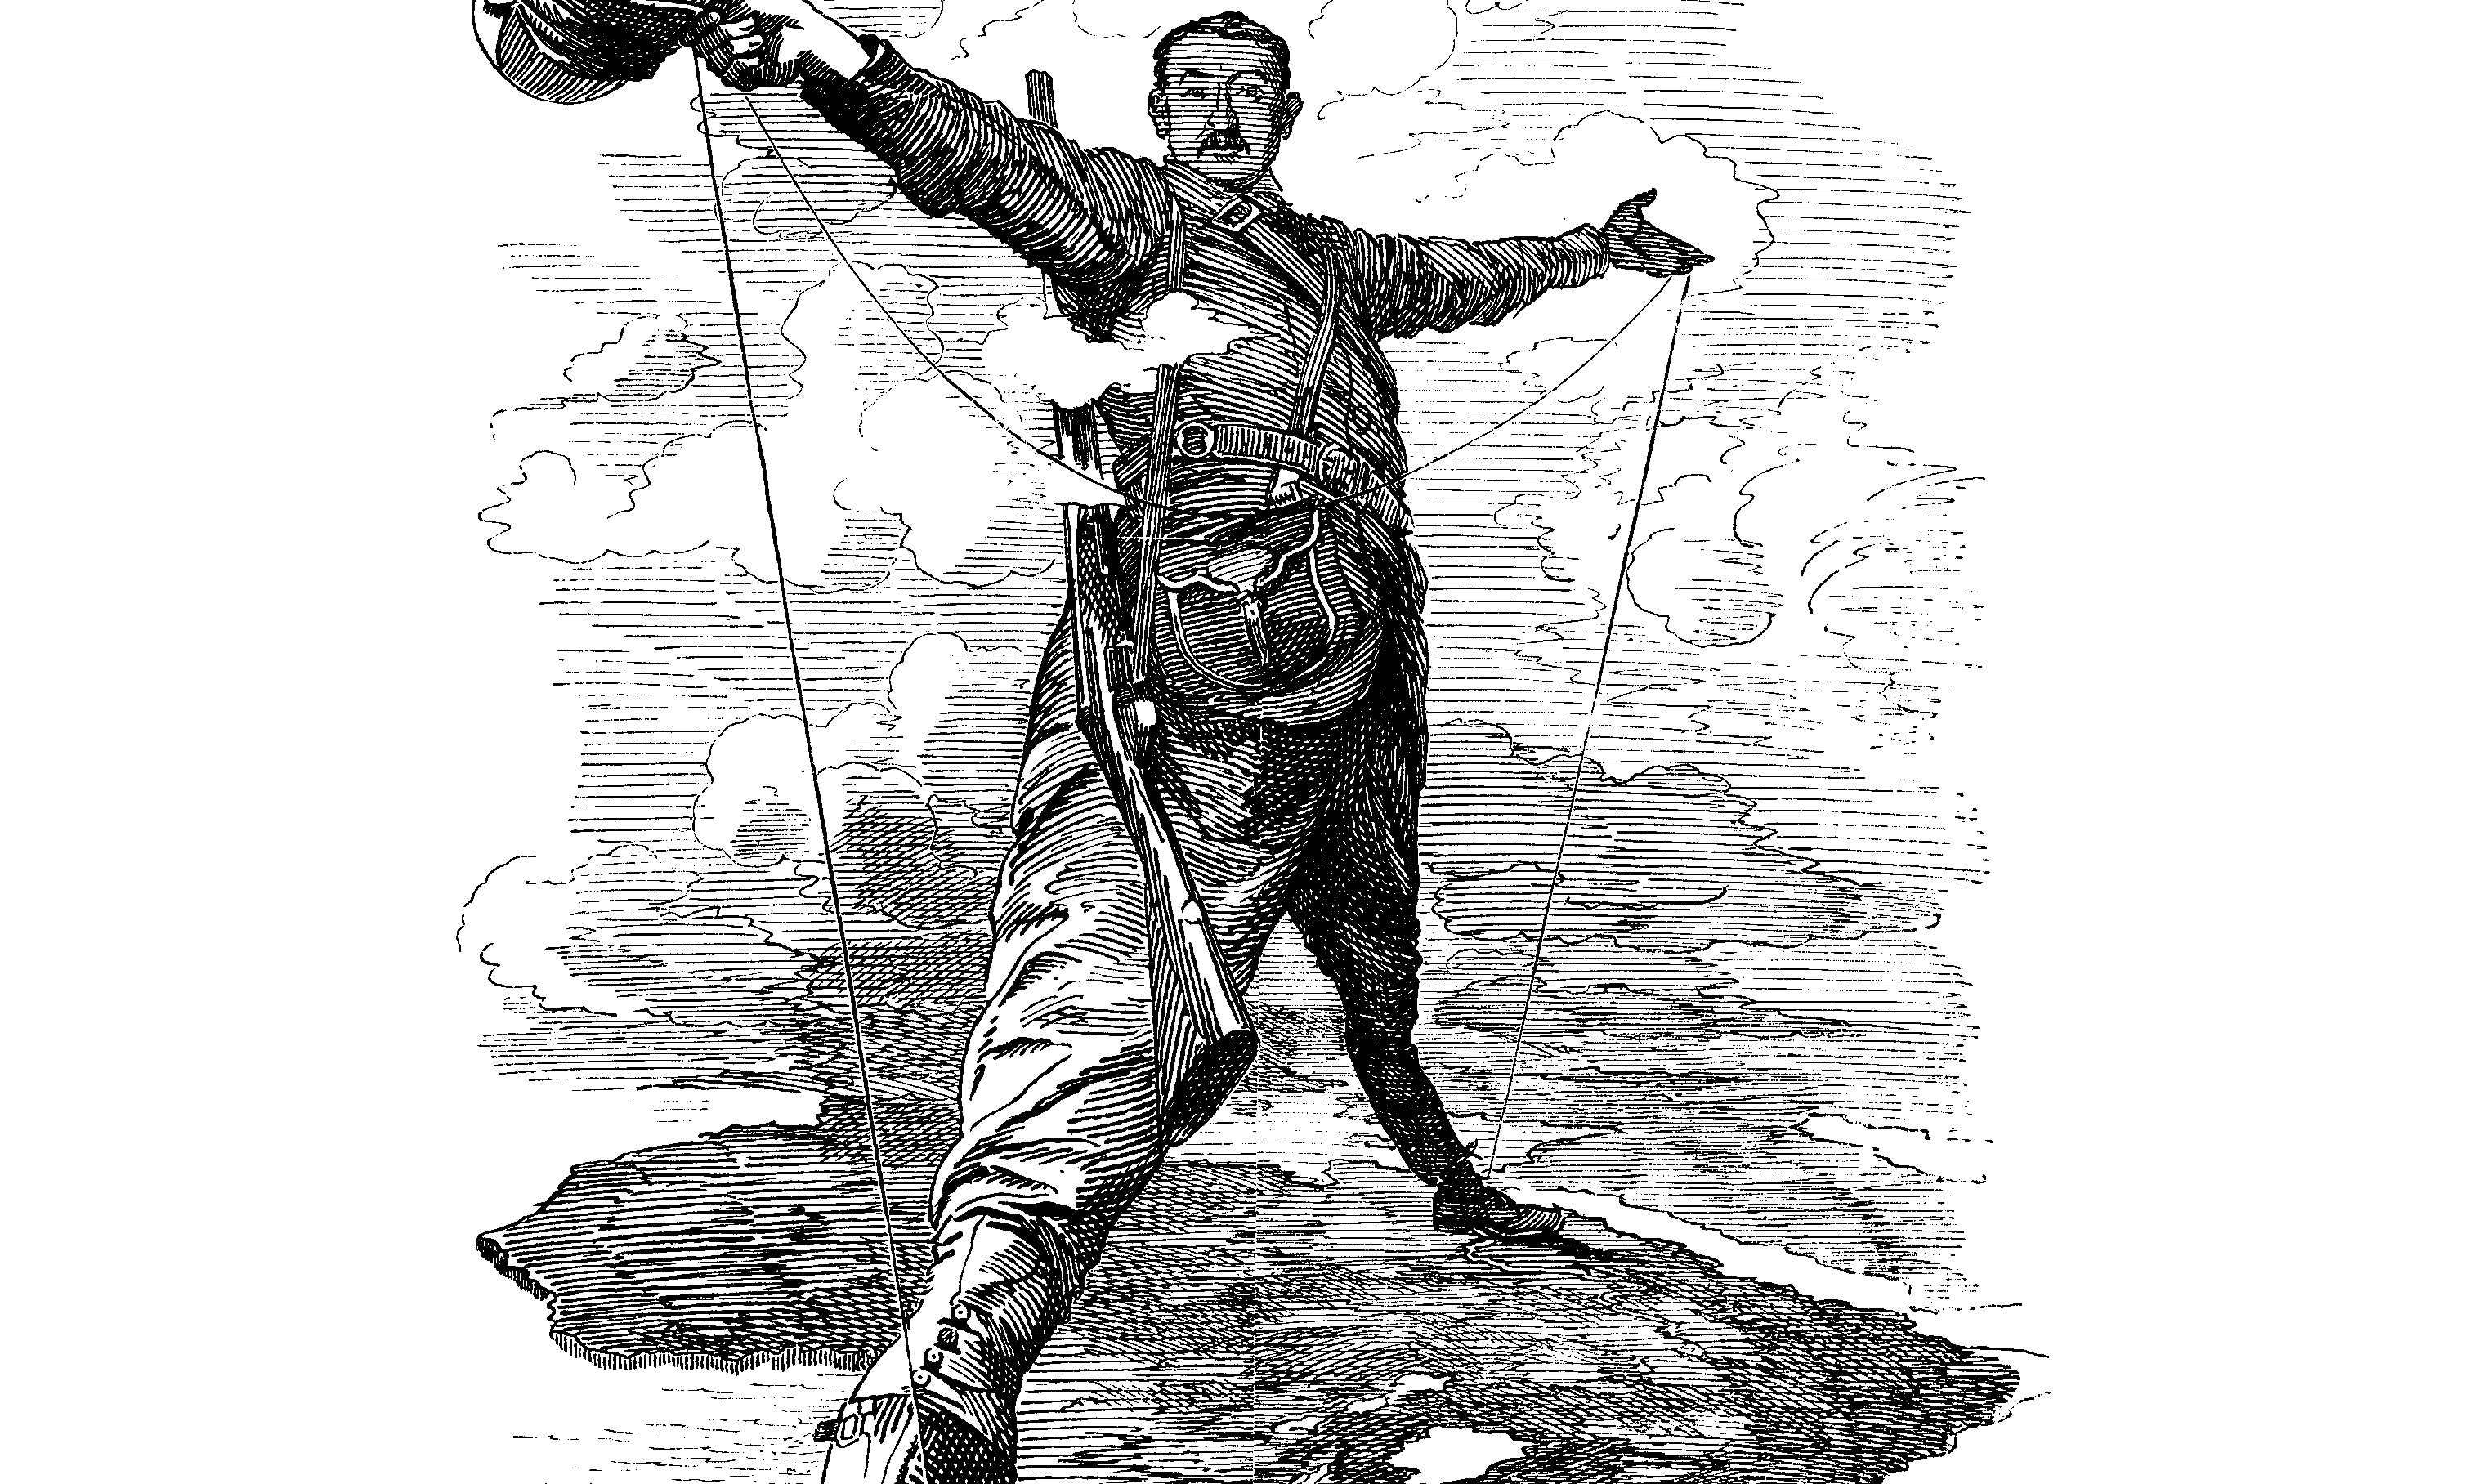 The Rhodes Colossus: Caricature of Cecil John Rhodes, after he announced plans for a telegraph line and railroad from Cape Town to Cairo.